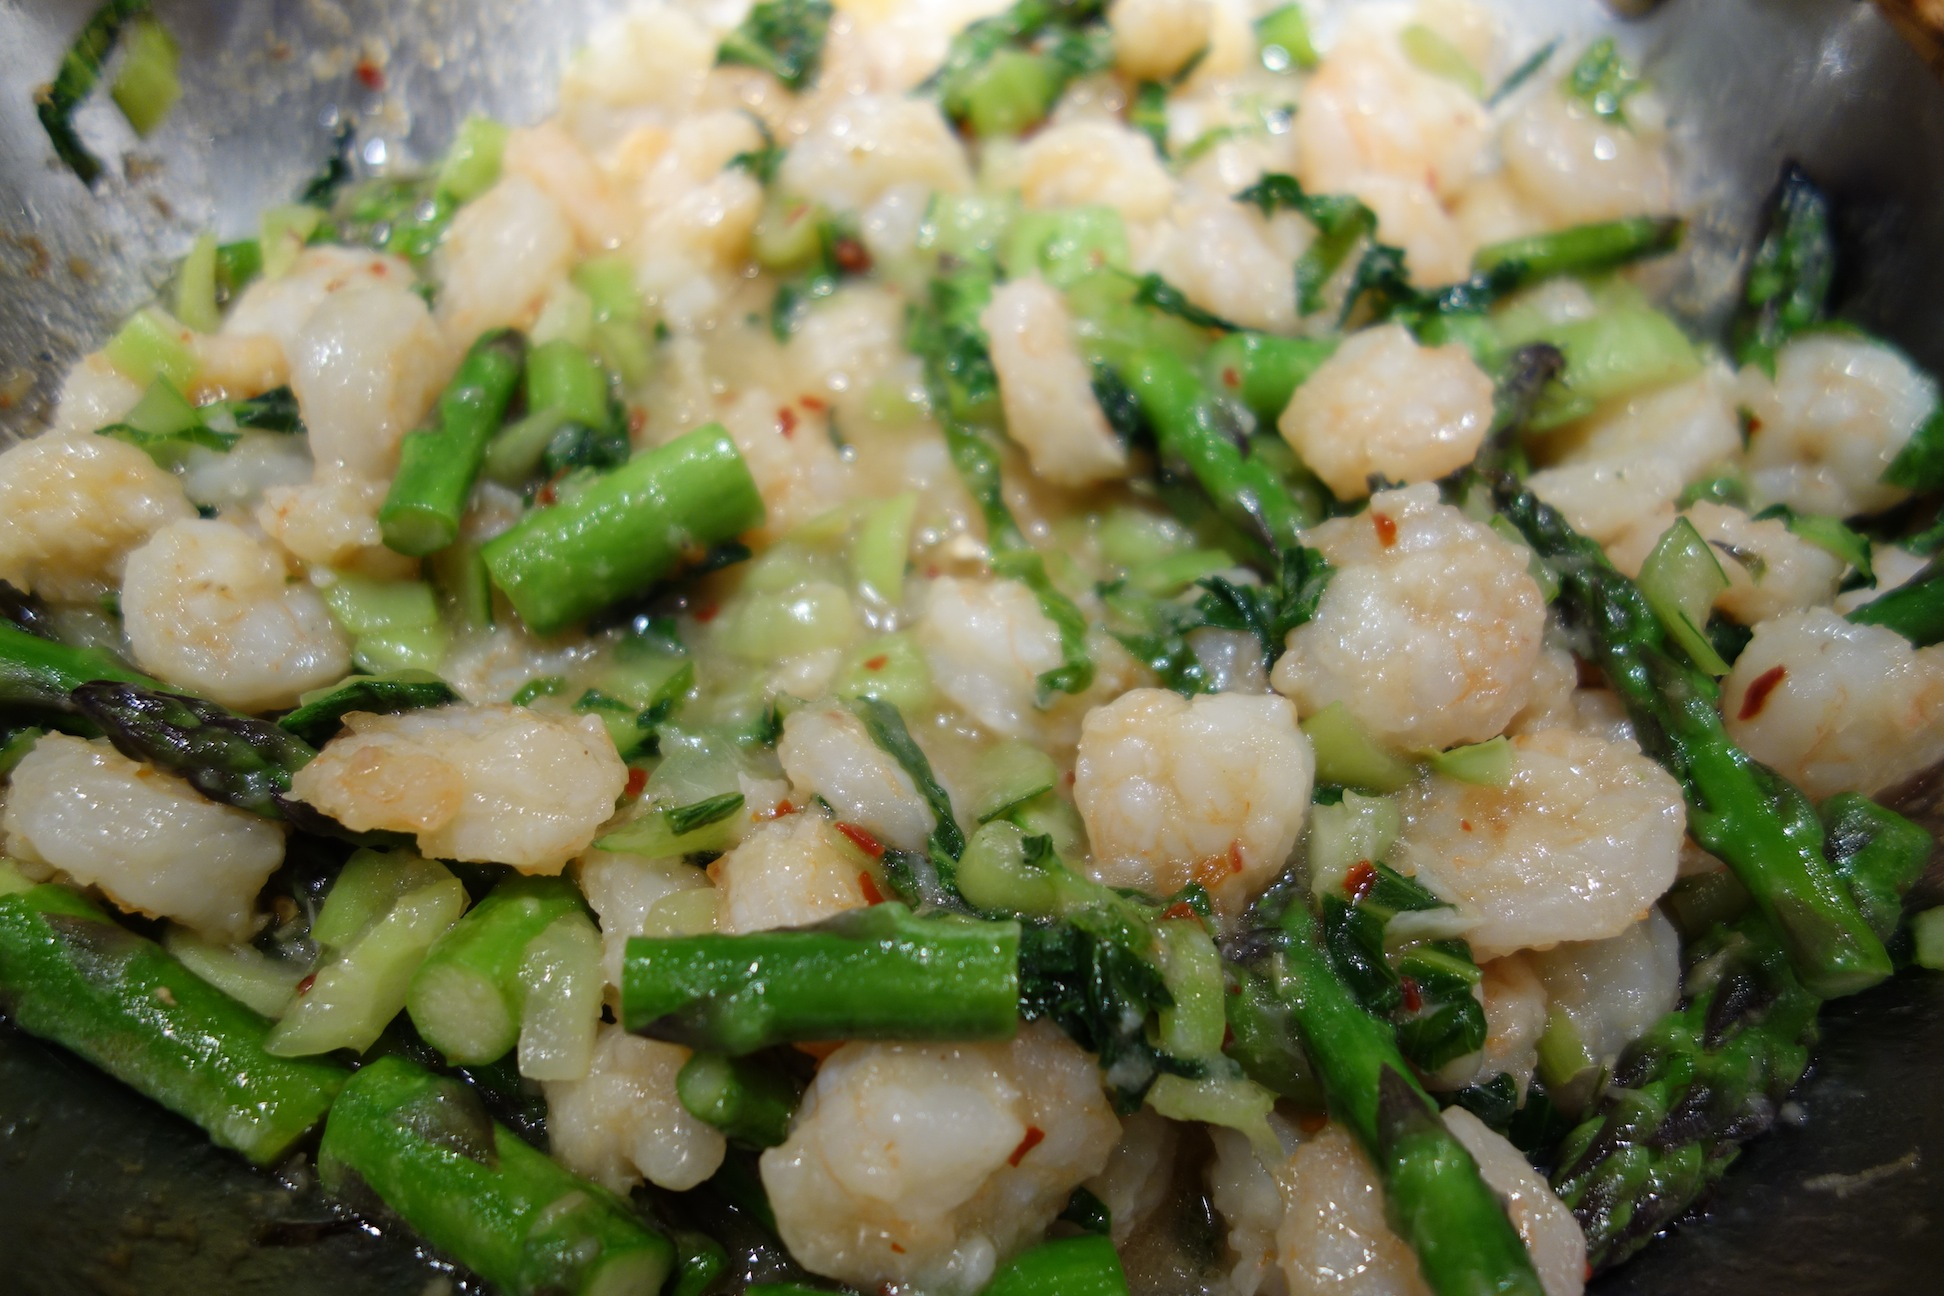 Shrimp Asparagus with Sweet Chili Sauce